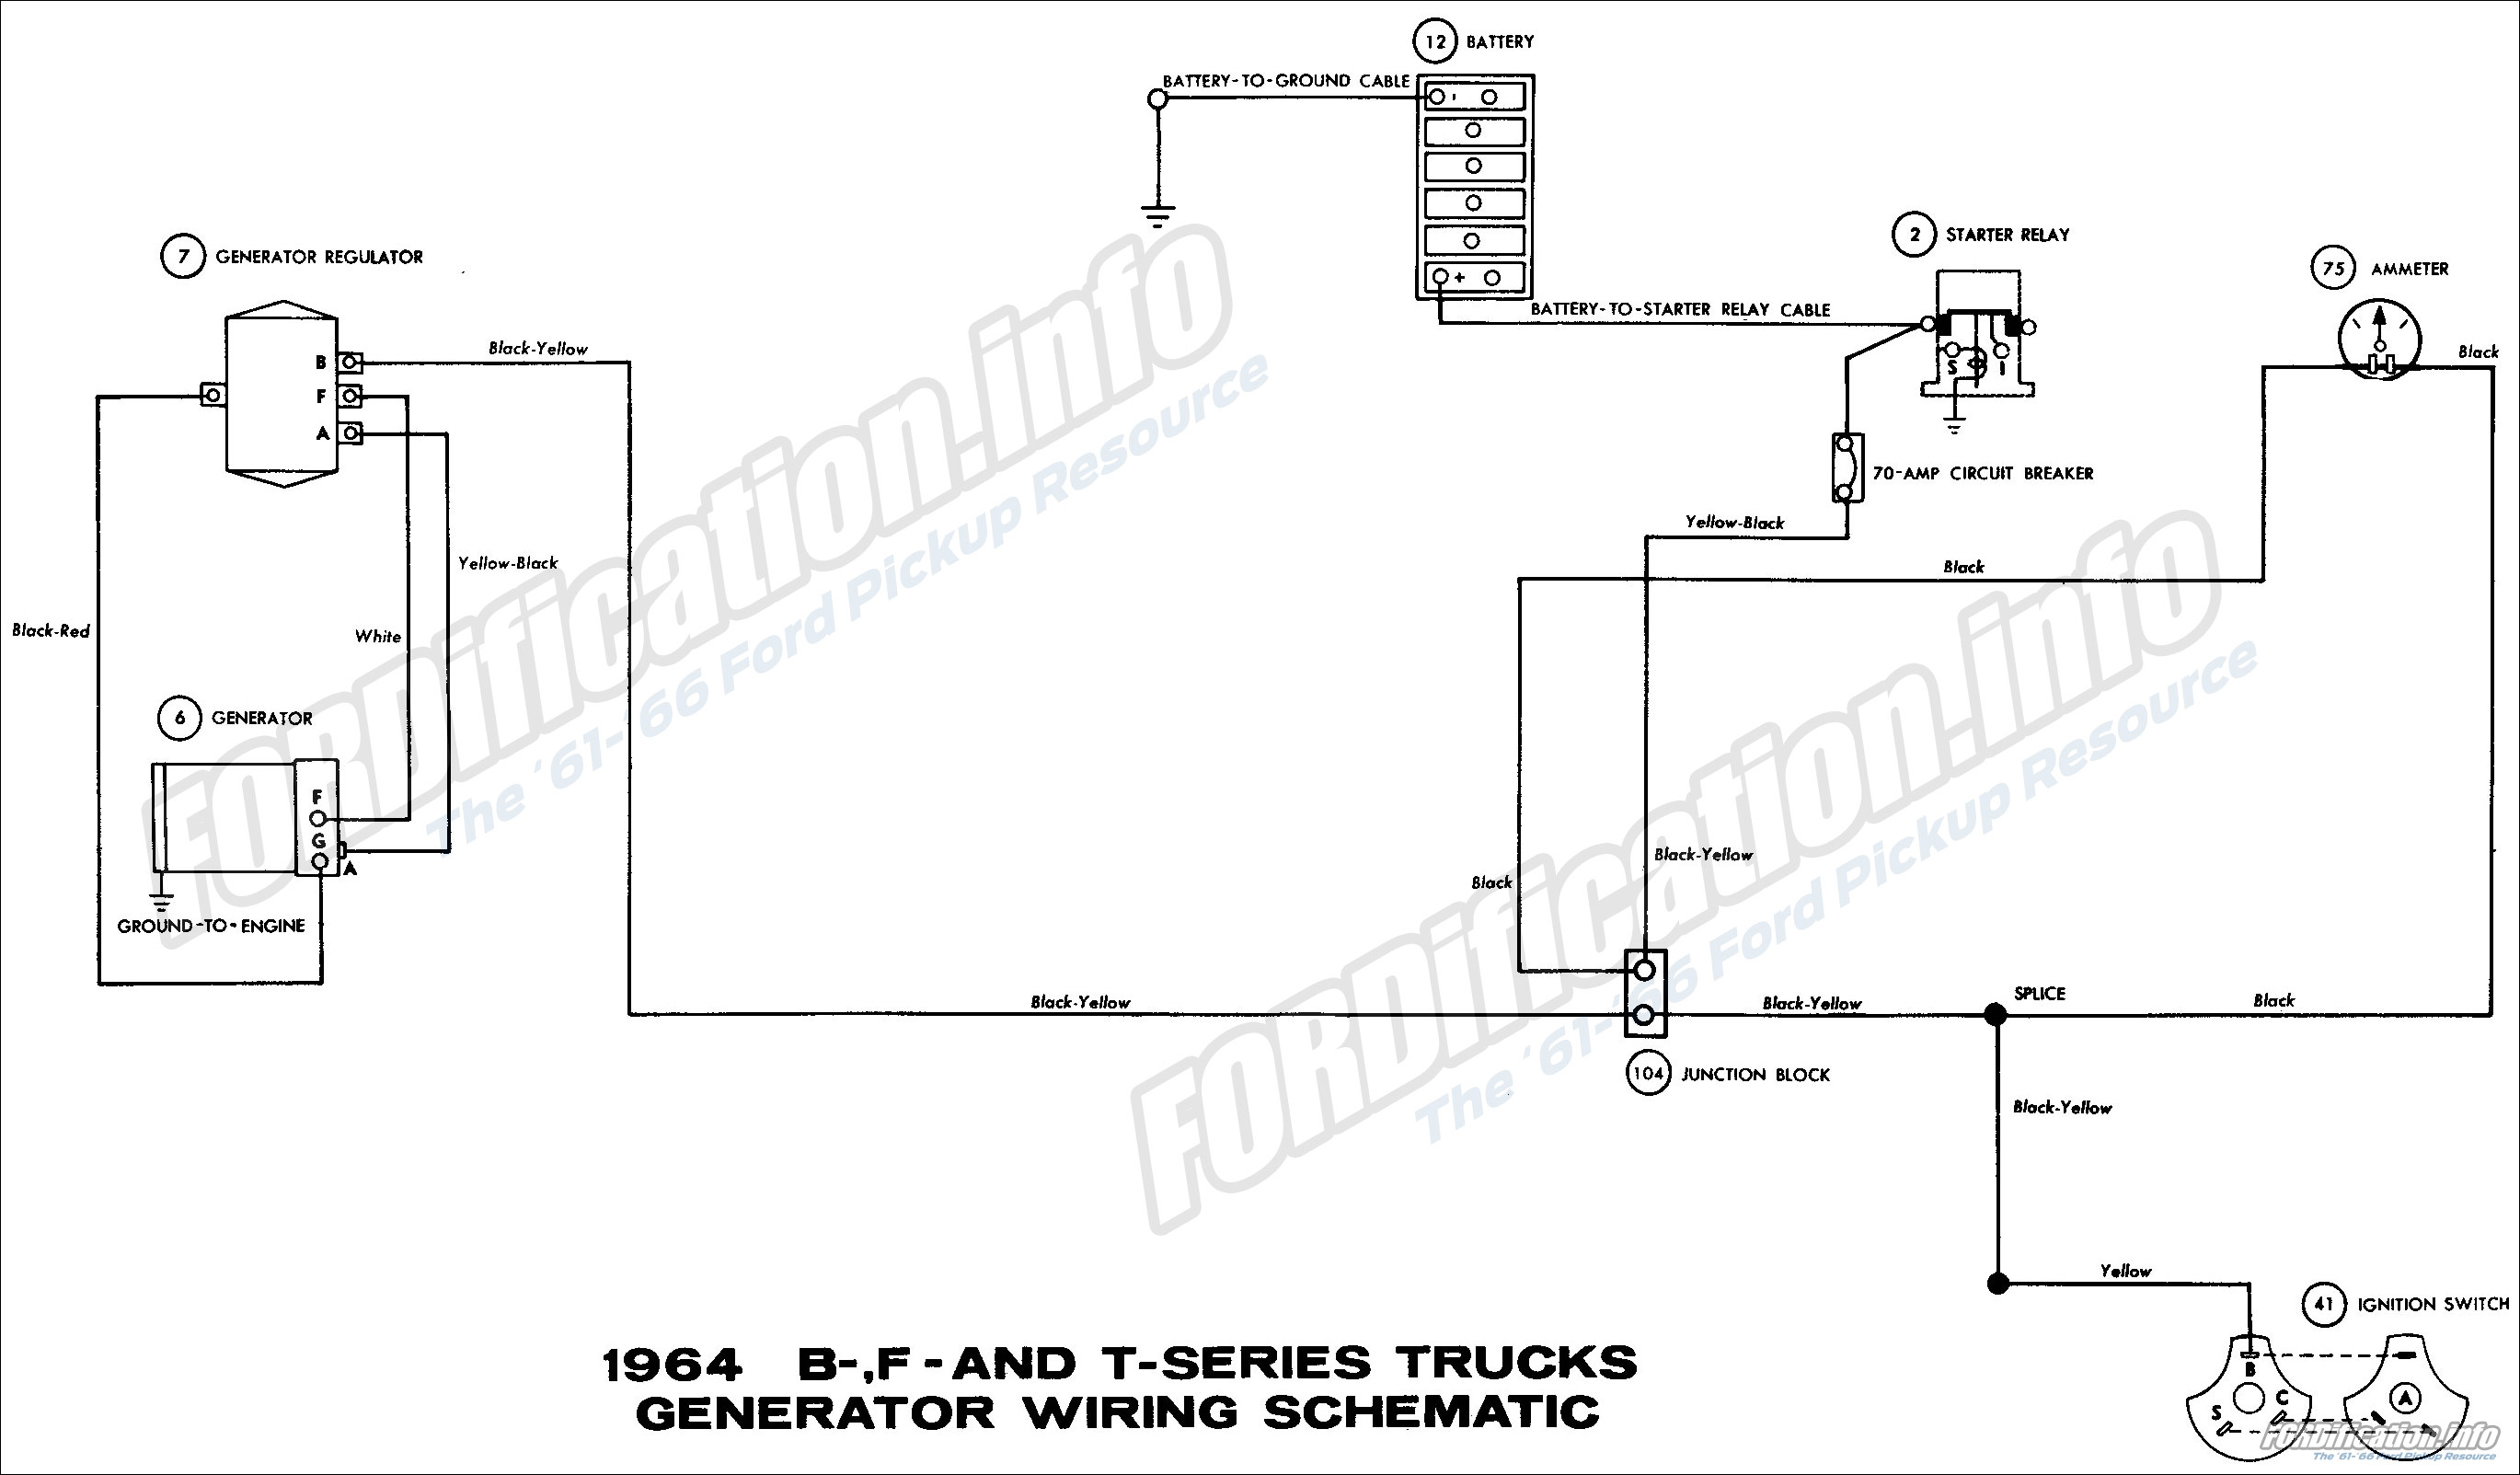 1964 ford truck wiring diagrams fordification info the 61 66 1964 b f and t series truck generator wiring schematic